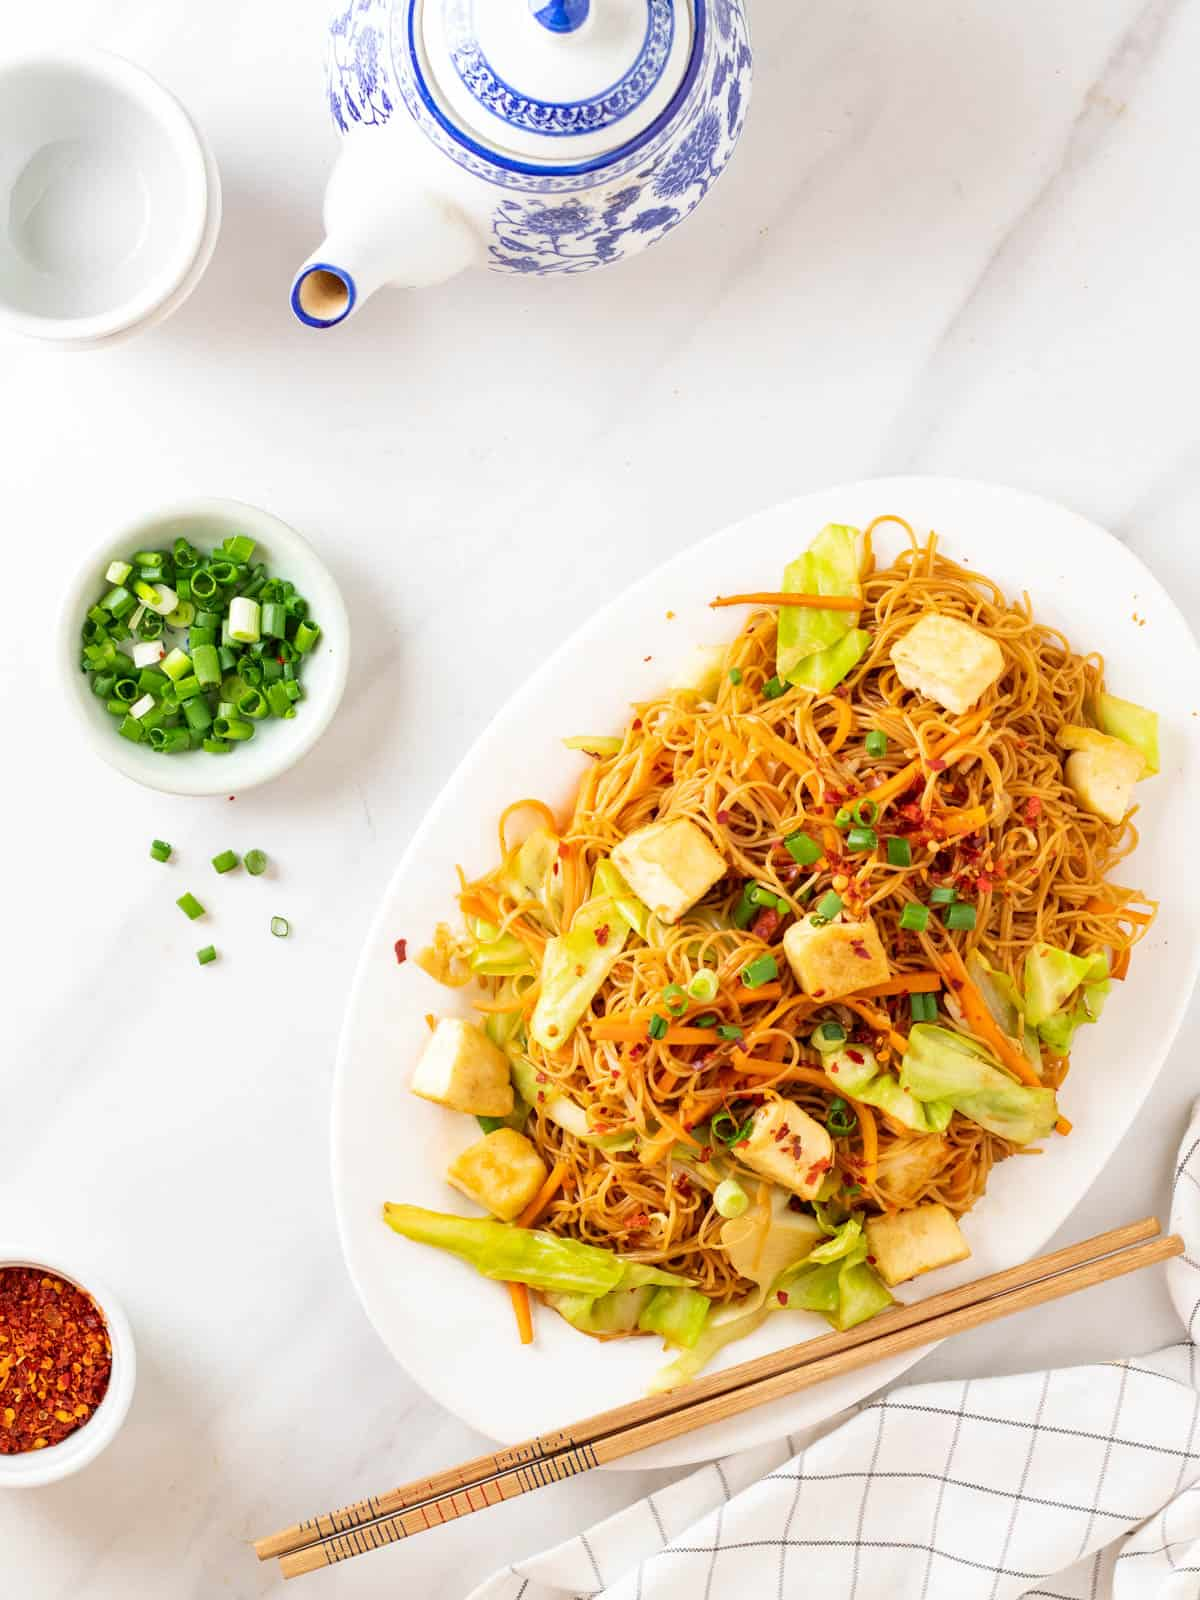 A overhead shot of fried rice vermicelli served in a white plate. There is a plate of green onion and a set of teapot in the background.